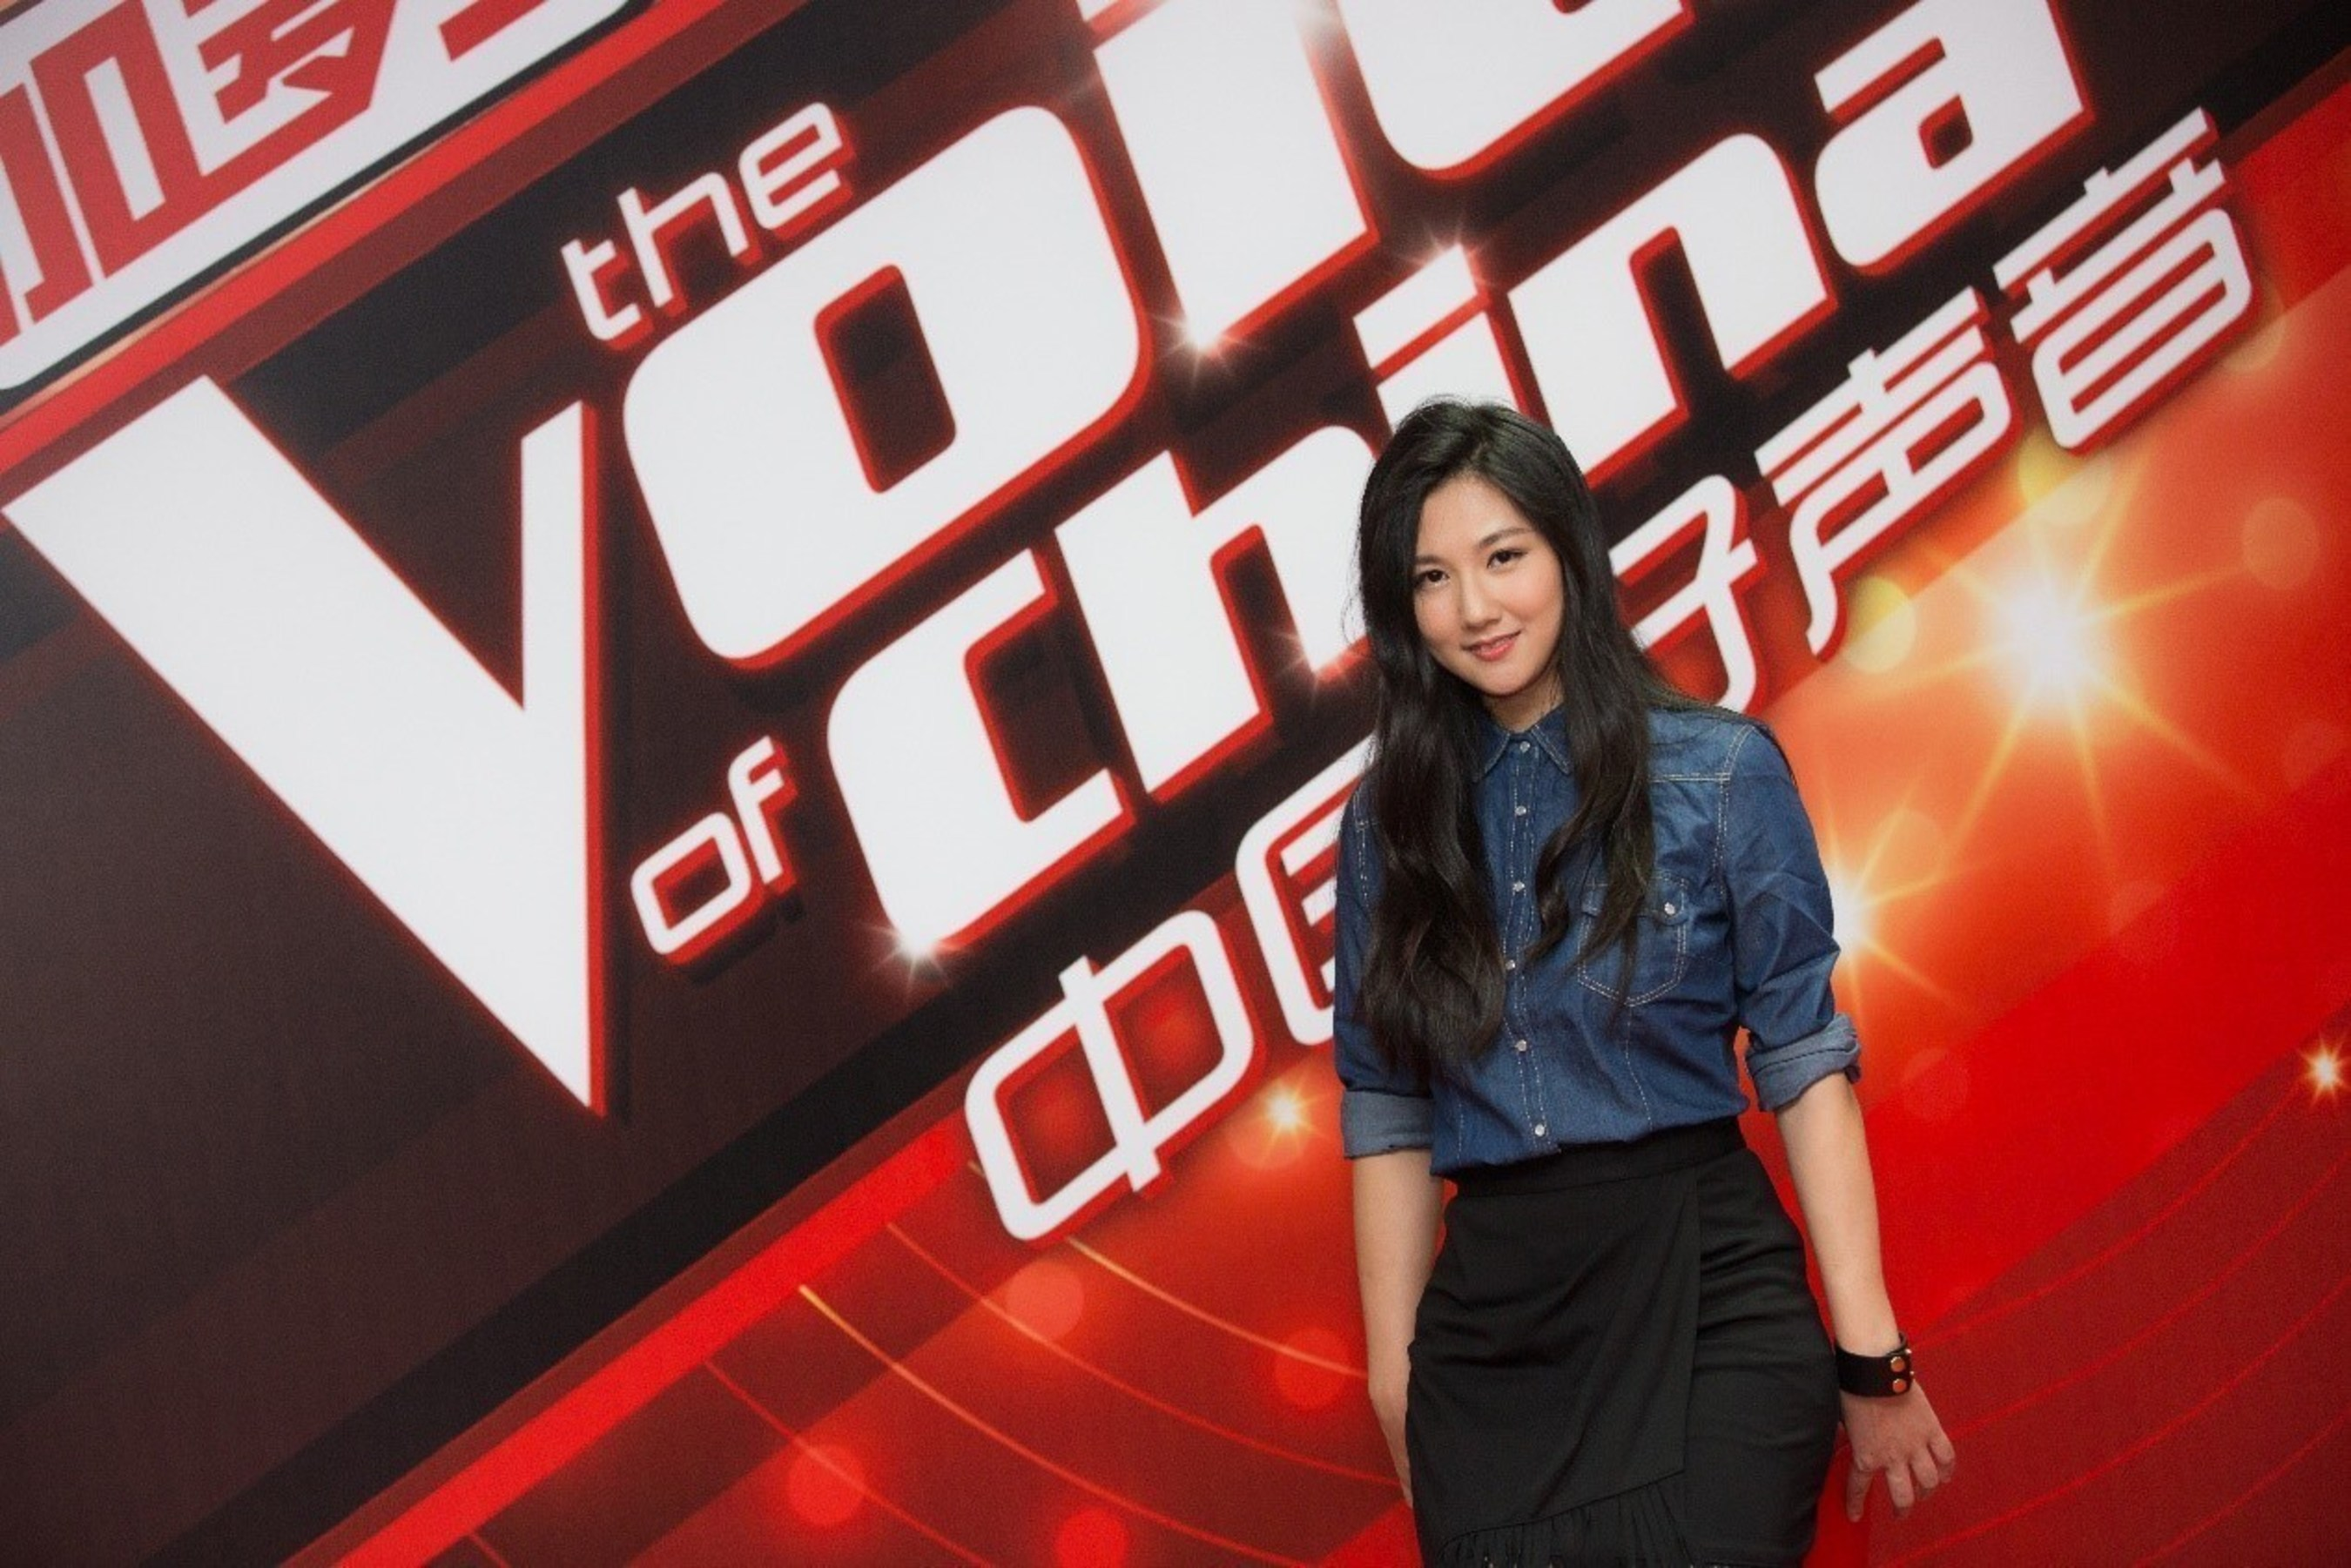 Video Games Commentator Xiao Cang Sets New World Record of 1.5 Billion Views